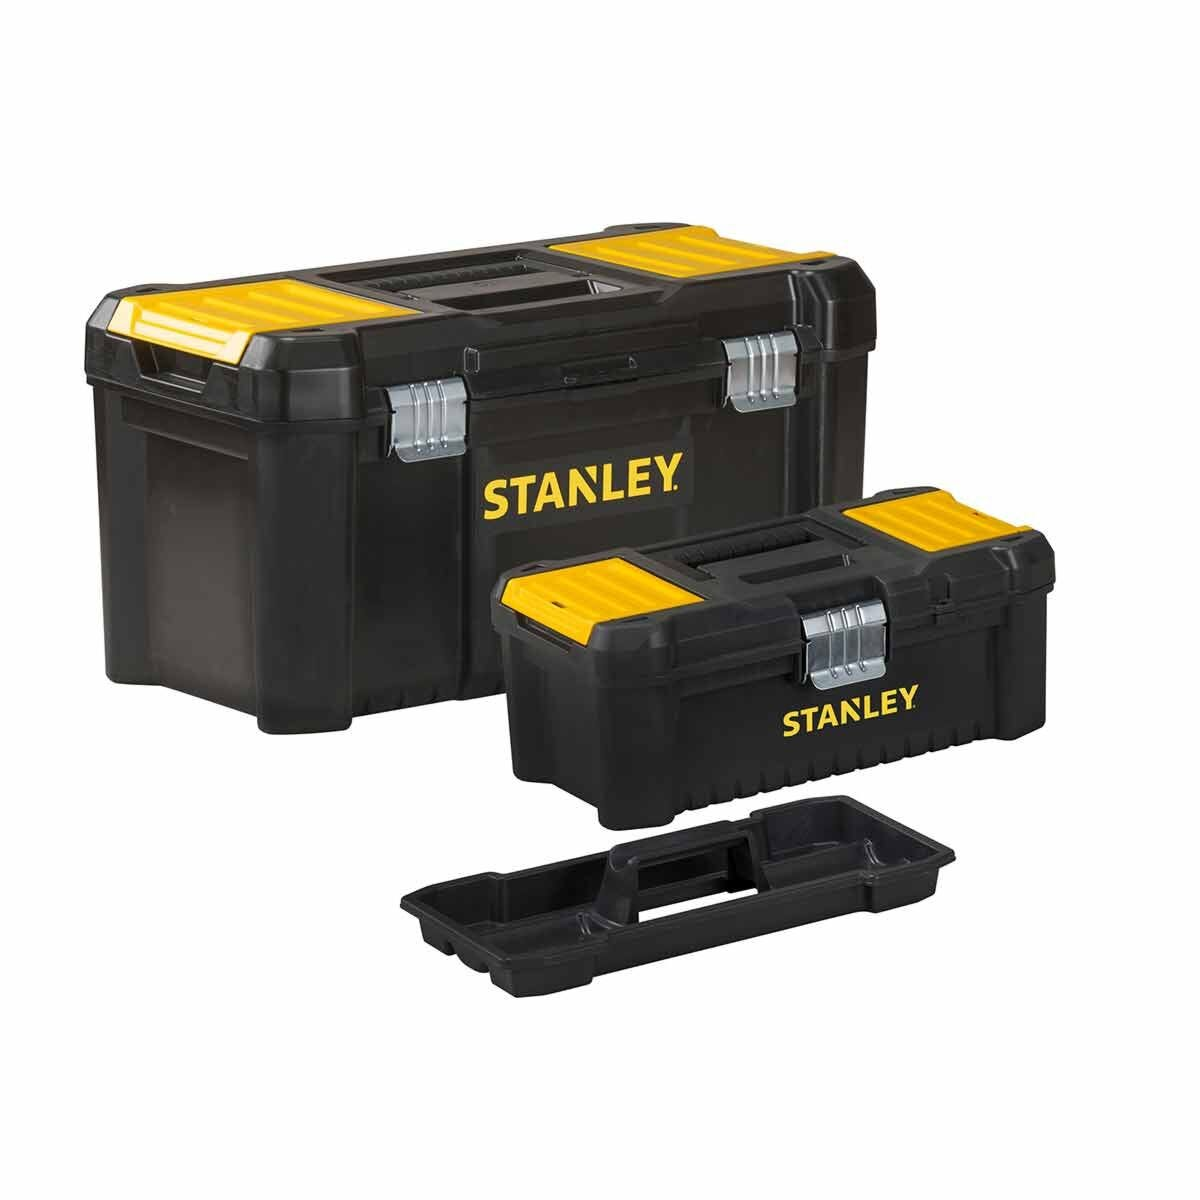 STANLEY Essential Toolbox Set 32cm and 48cm